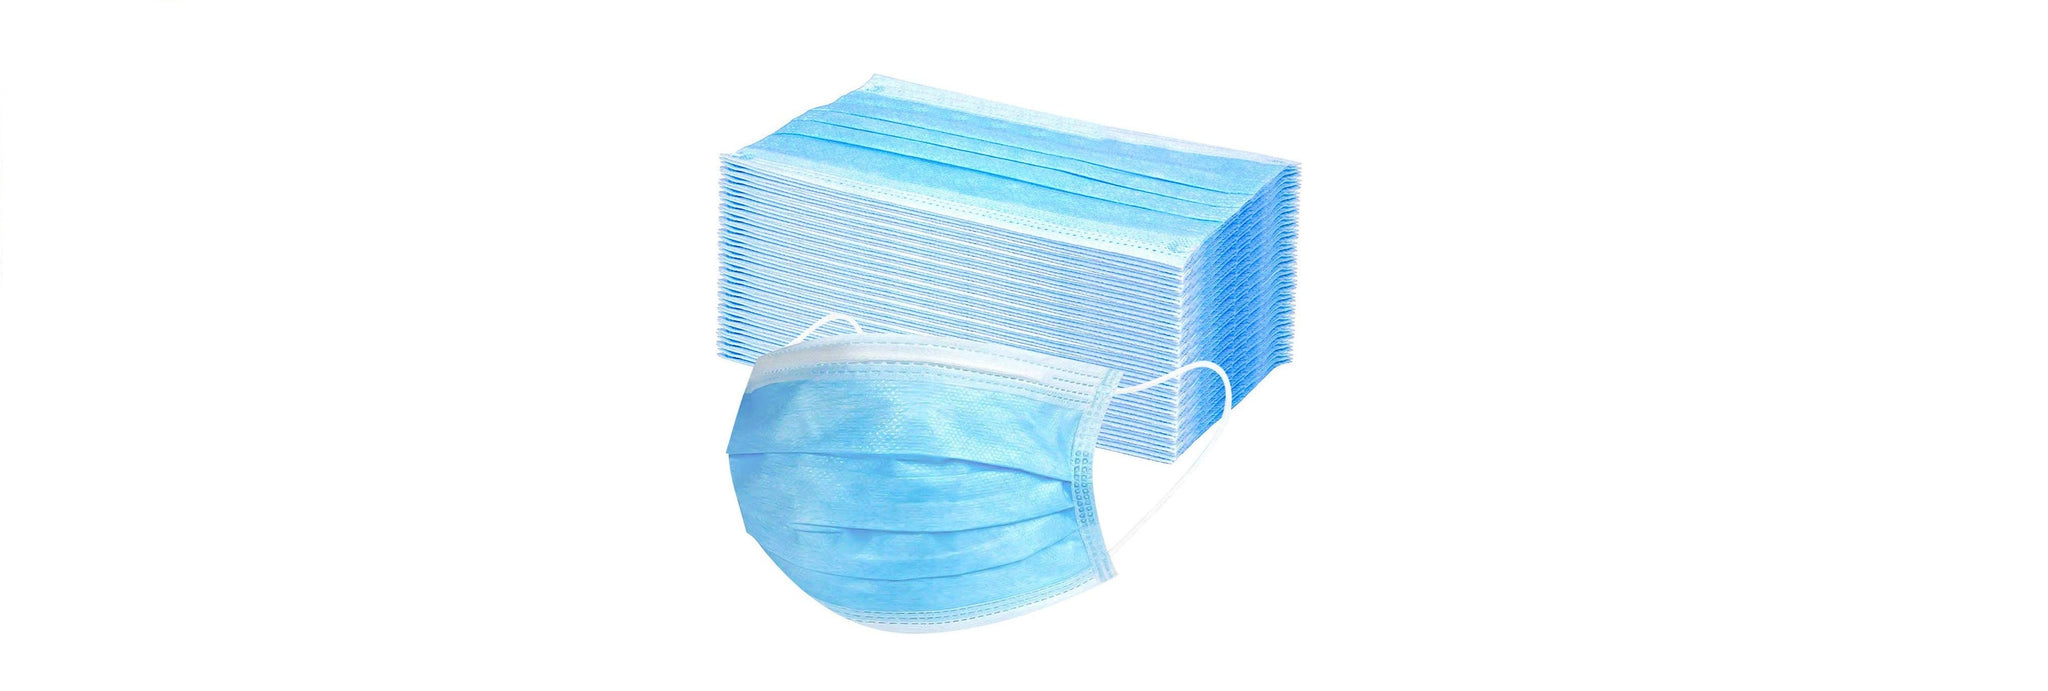 3 Layer Disposable Mouth Nasal Protective Mask3 Layer Disposable Mouth Nasal Protective Mask (Pack of 10)